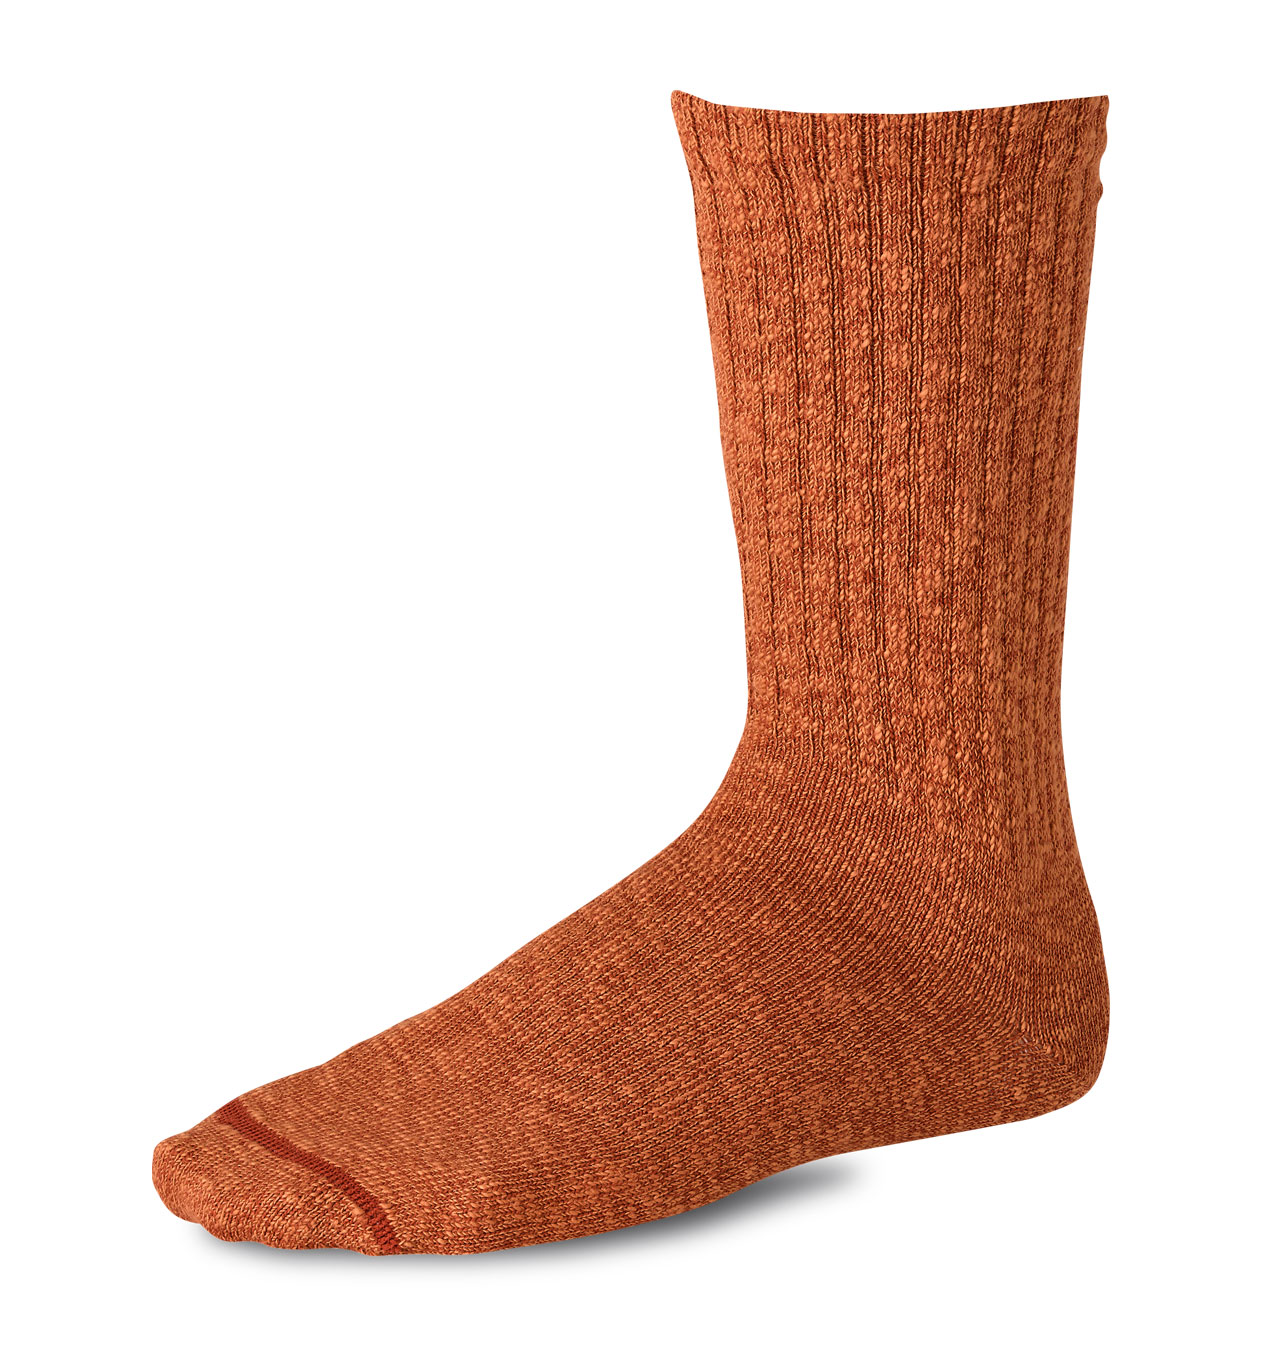 Red Wing - 97371 Cotton Ragg Over Dyed Tonal Sock - Rust/Orange